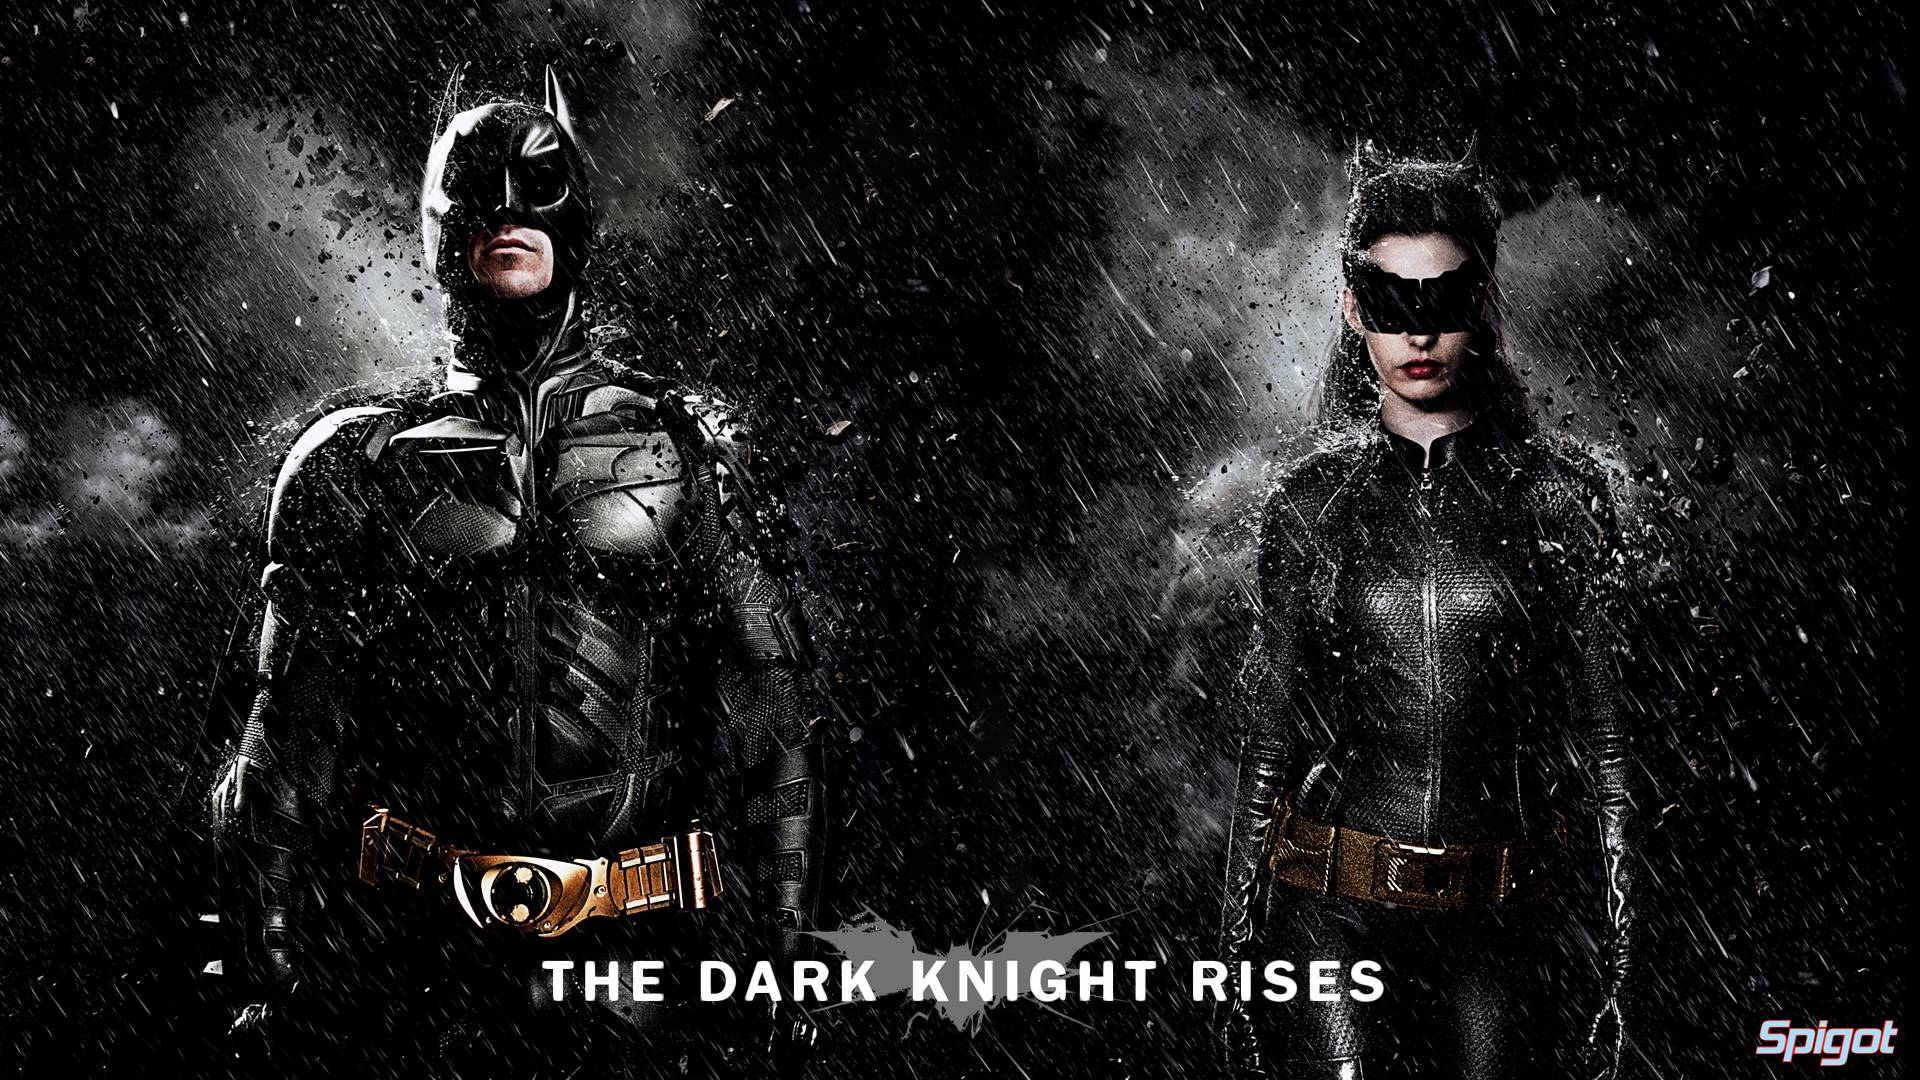 Great The Dark Knight Rises Iphone Wallpaper Hd 640x960PX .